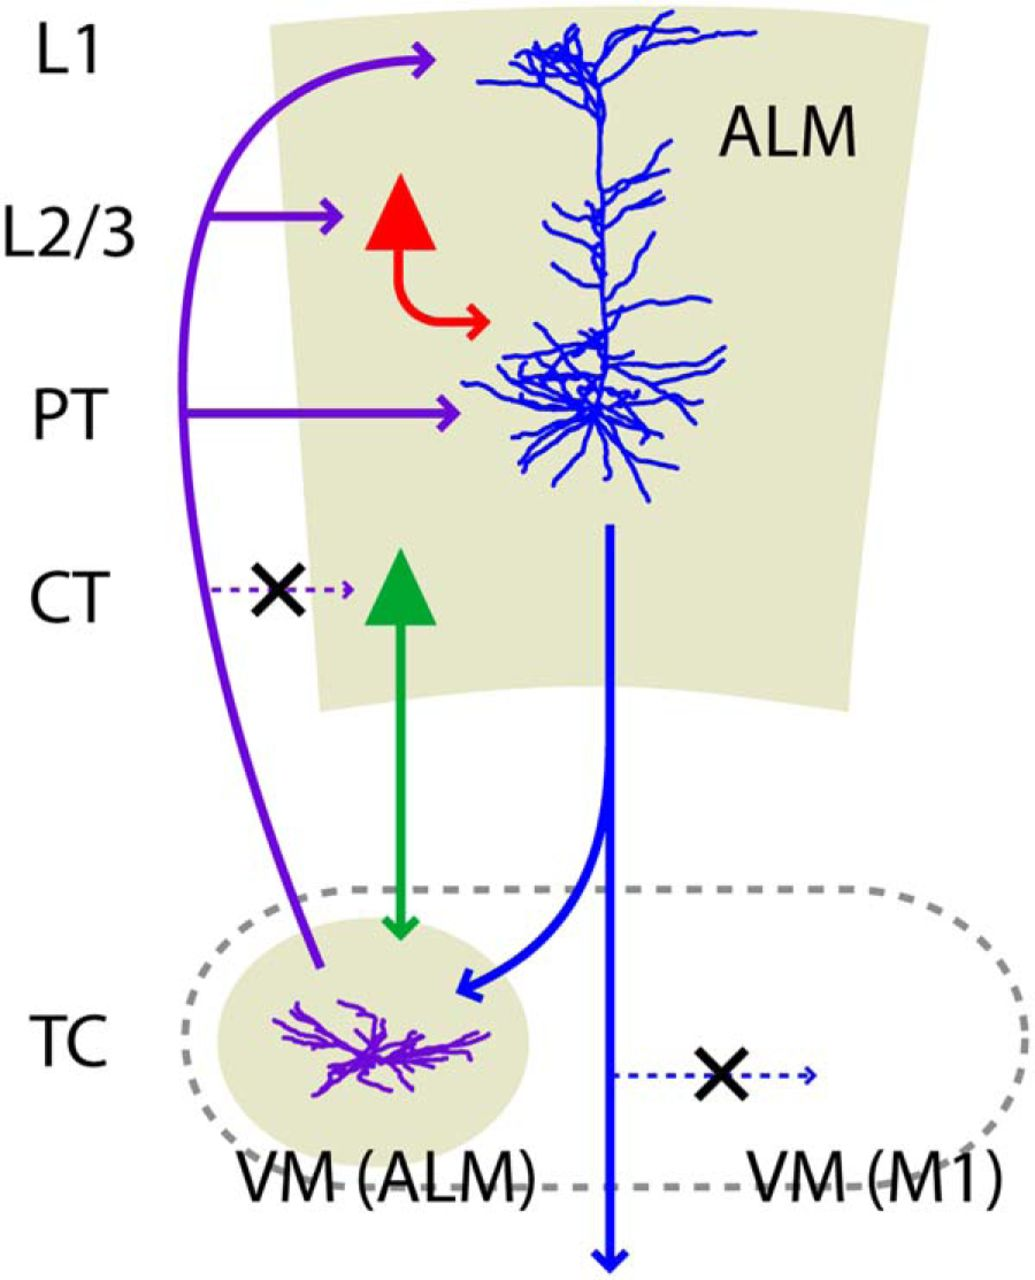 Anterolateral Motor Cortex Connects With A Medial Subdivision Of Wiring Diagram Besides Cat 5 Cable On Goodman Download Figure Open In New Tab Powerpoint 8 Schematic Summary Key Connections